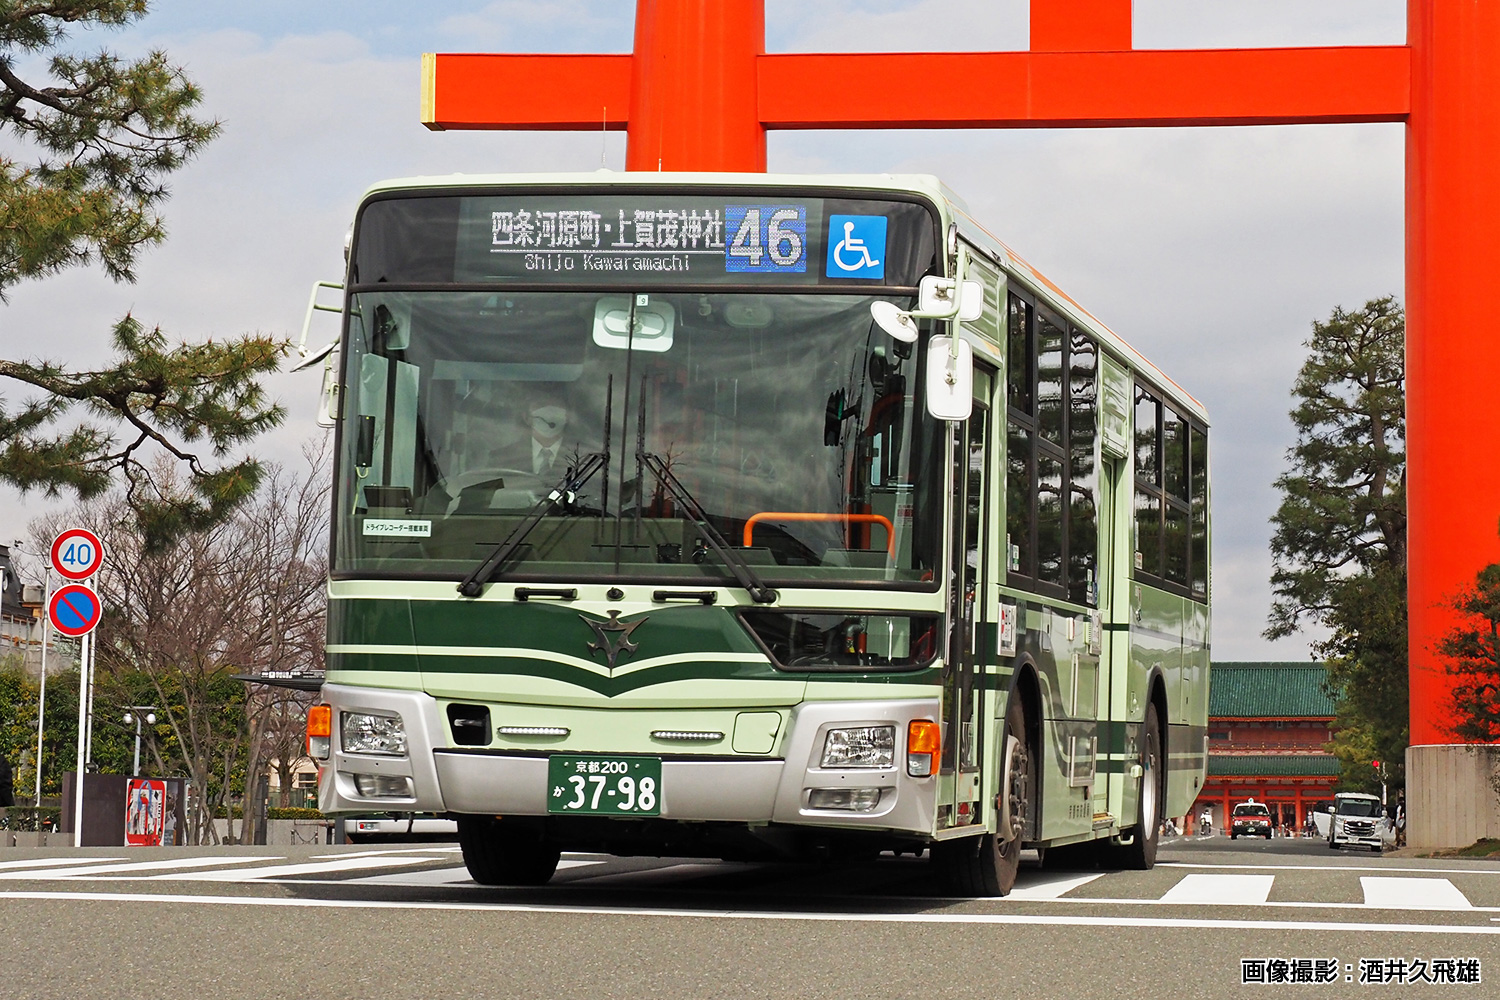 Aoshima 1/80 Mitsubishi Fuso Aero Star MP38 (Kyoto City Metropolitan Bureau of Transportation)